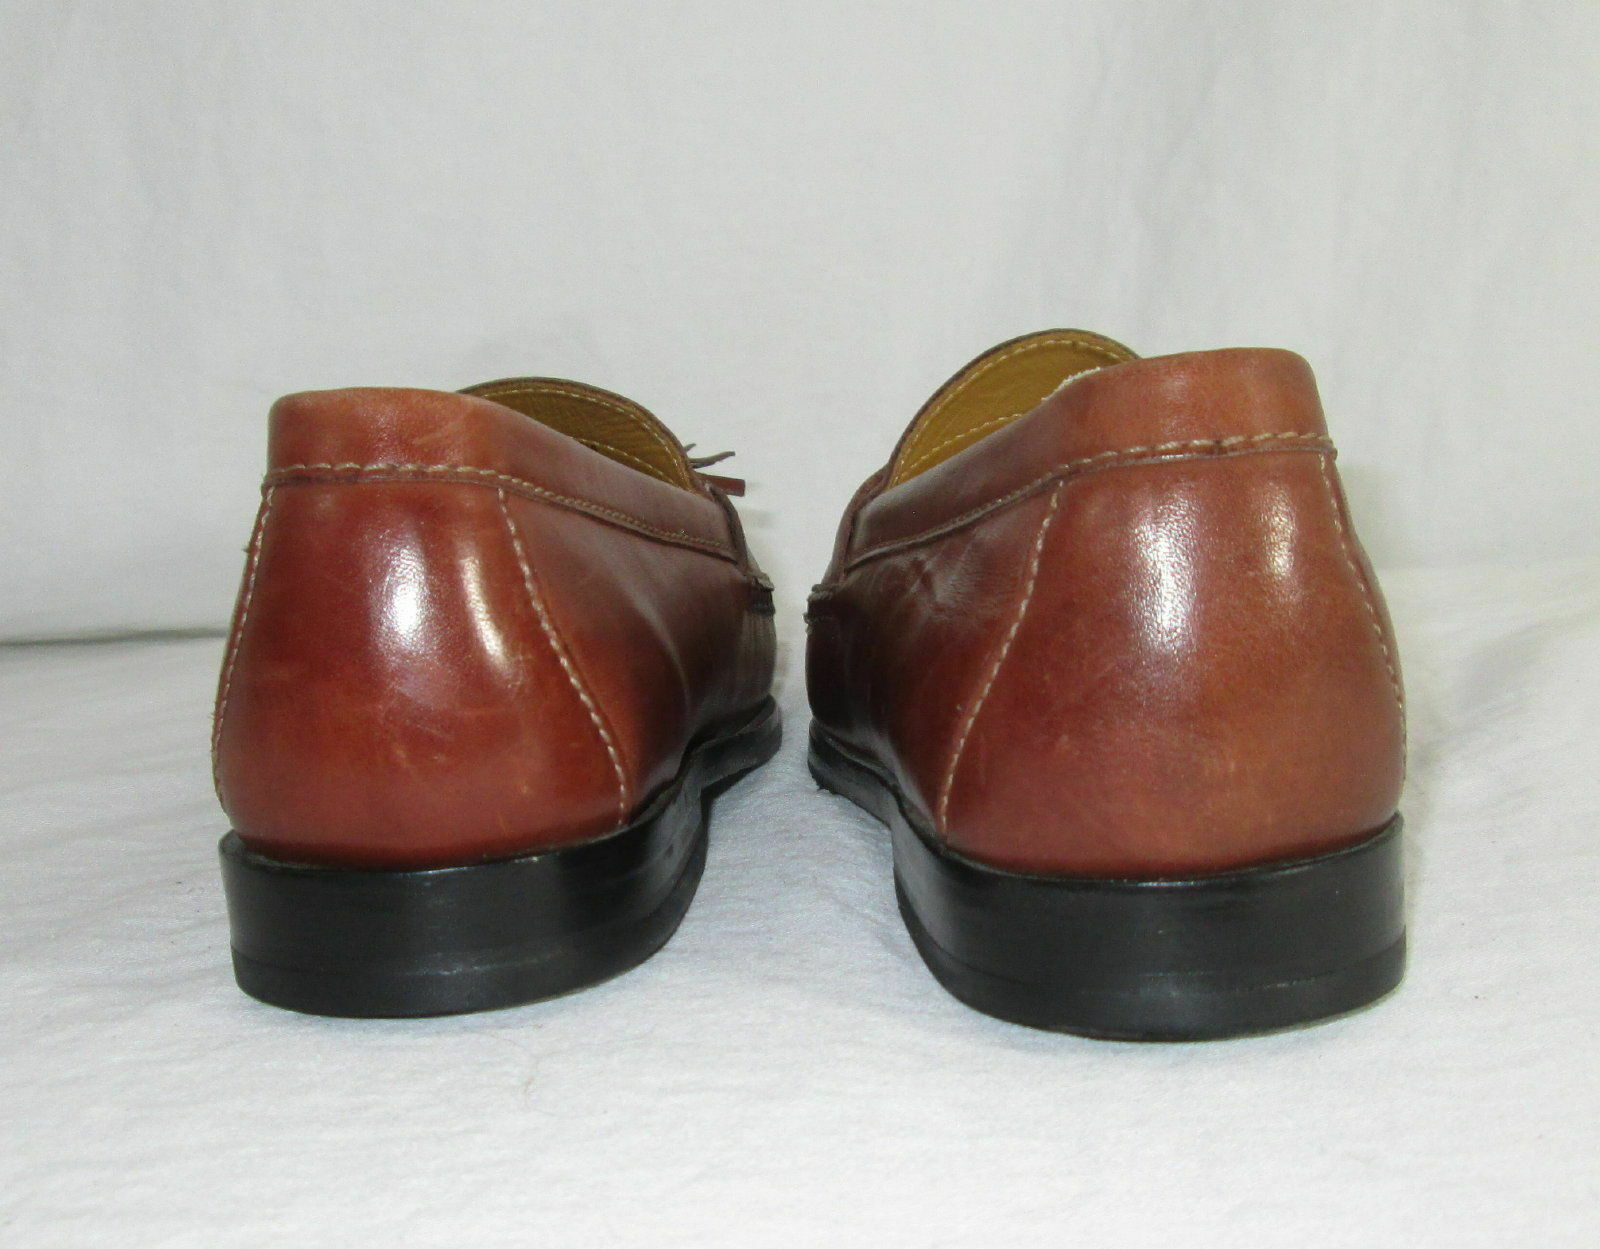 Cole Haan Shoes Size 7.5 Loafers Mens Brown Leather Tassels C06982 India  image 5